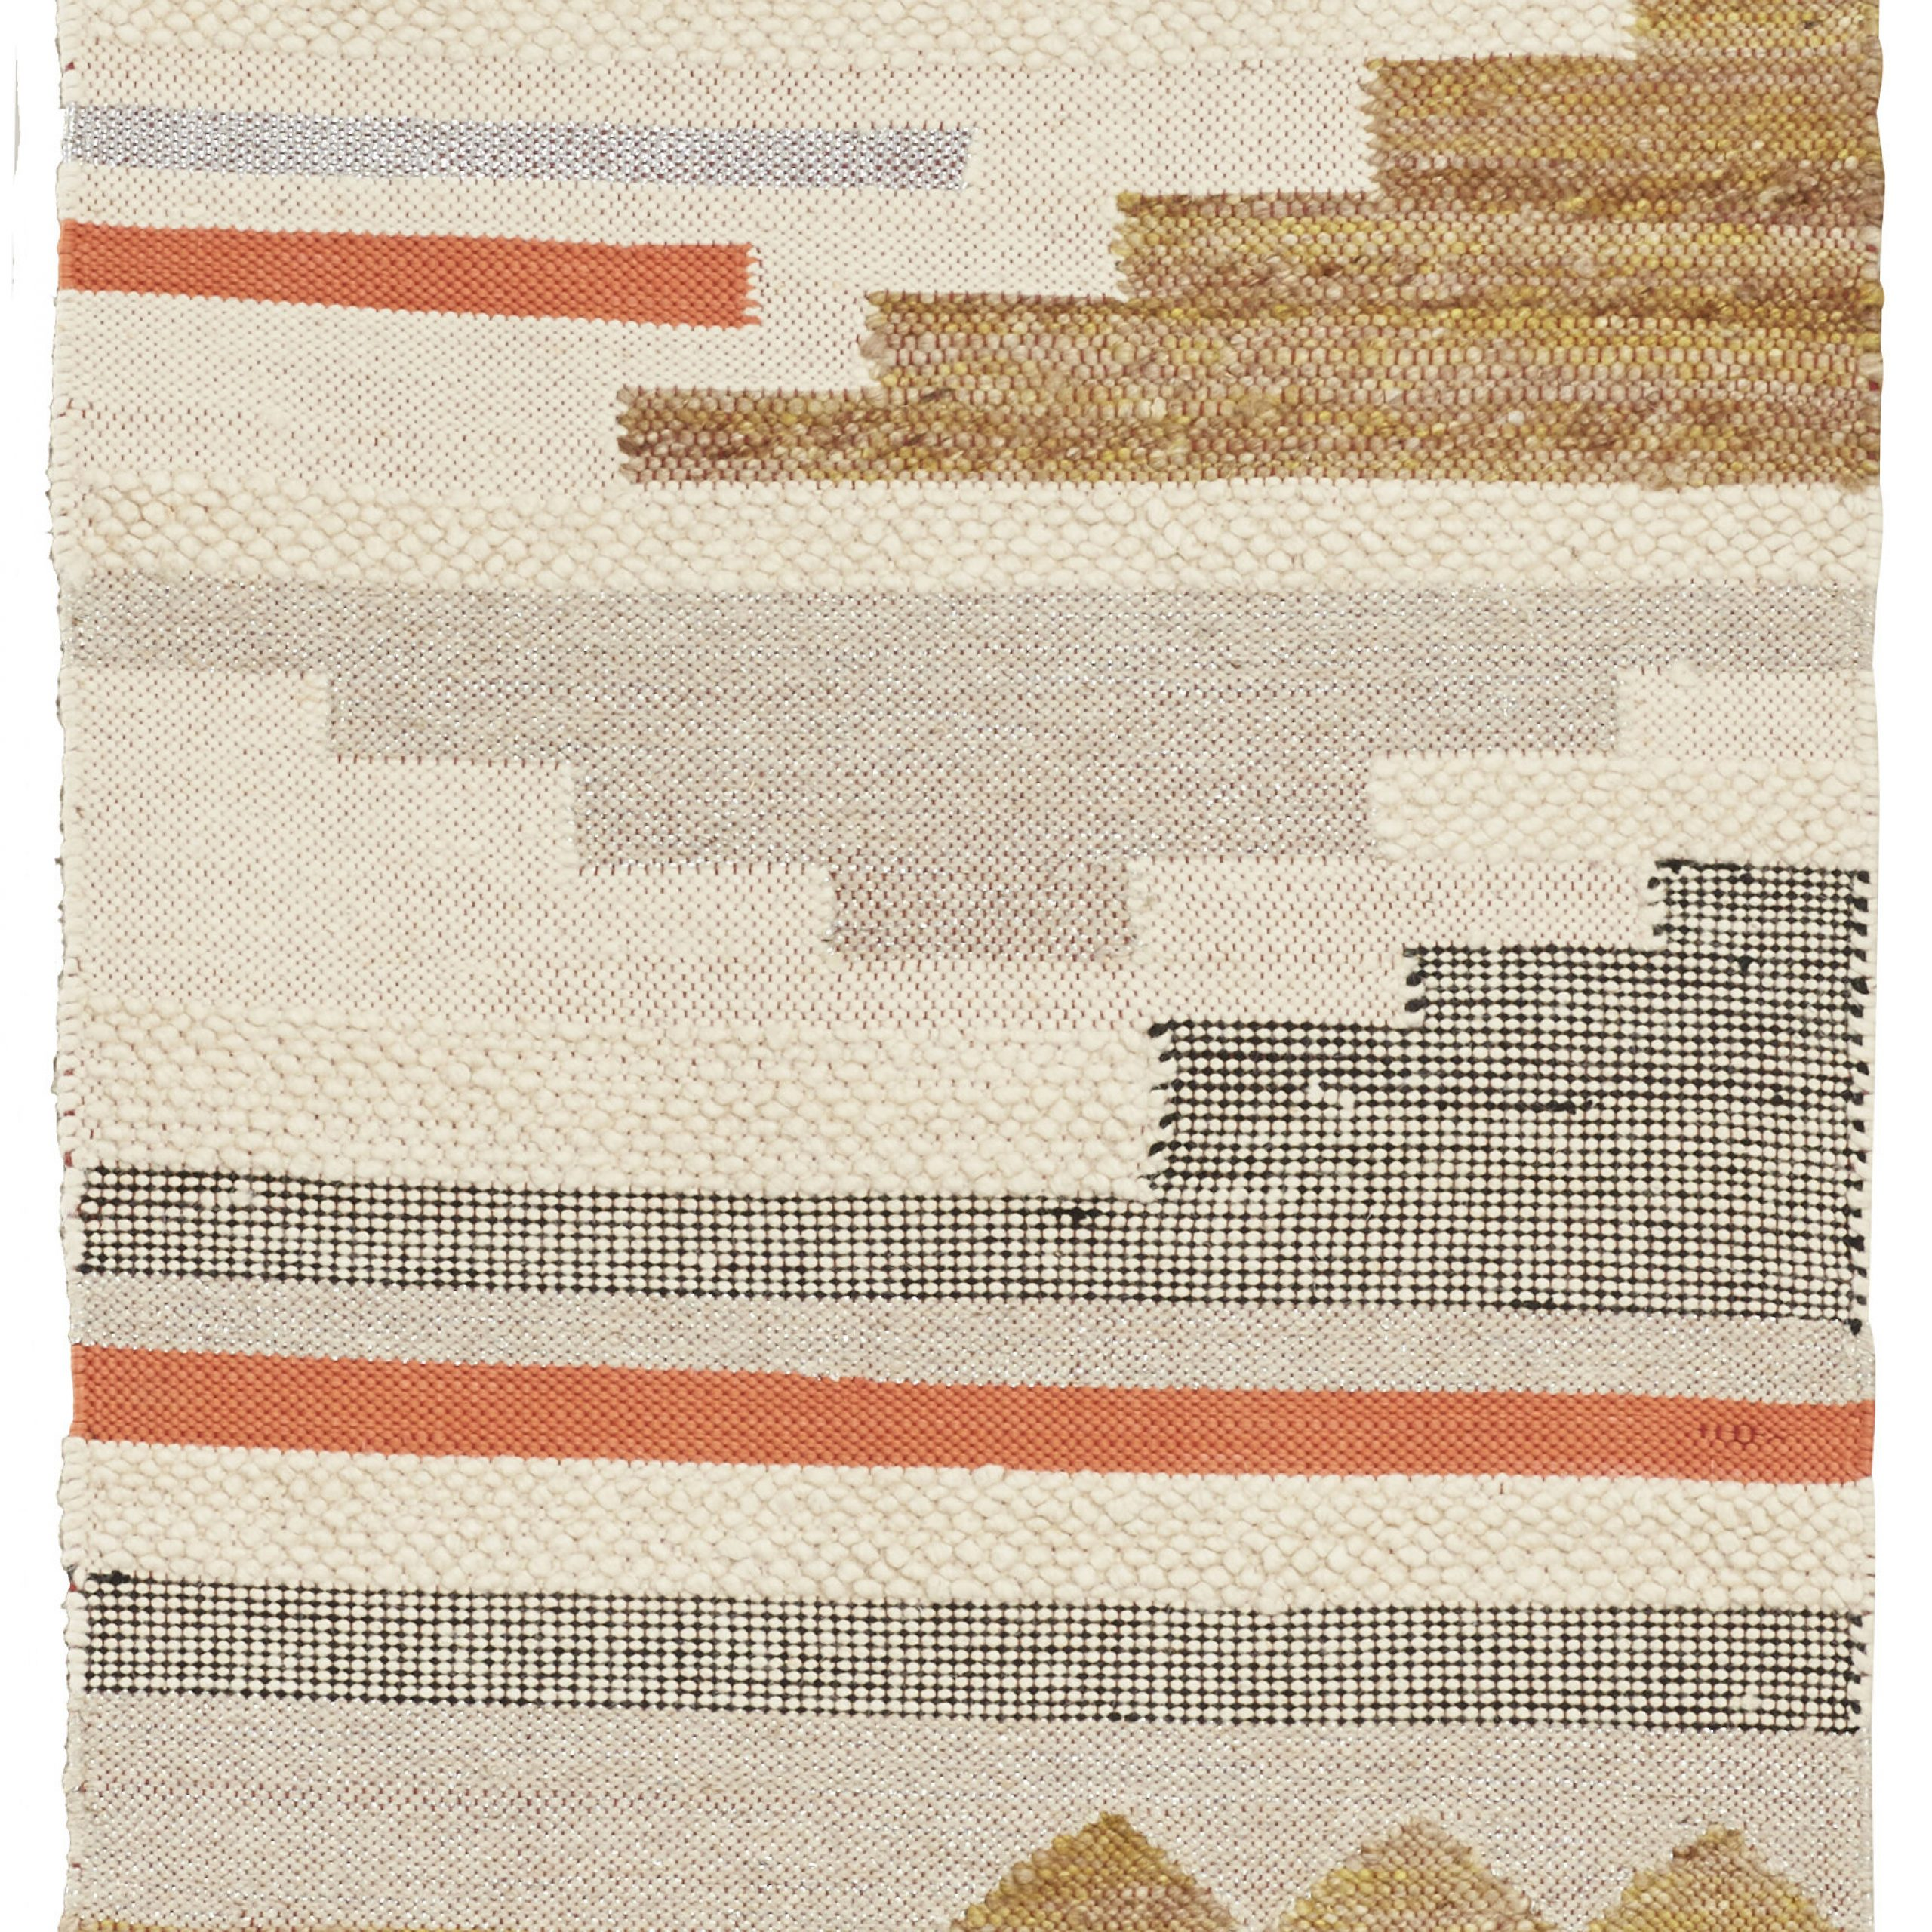 Blended Fabric Ranier Wall Hangings With Hanging Accessories Included With Regard To Well Liked Blended Fabric Tapestries You'll Love In (View 5 of 20)